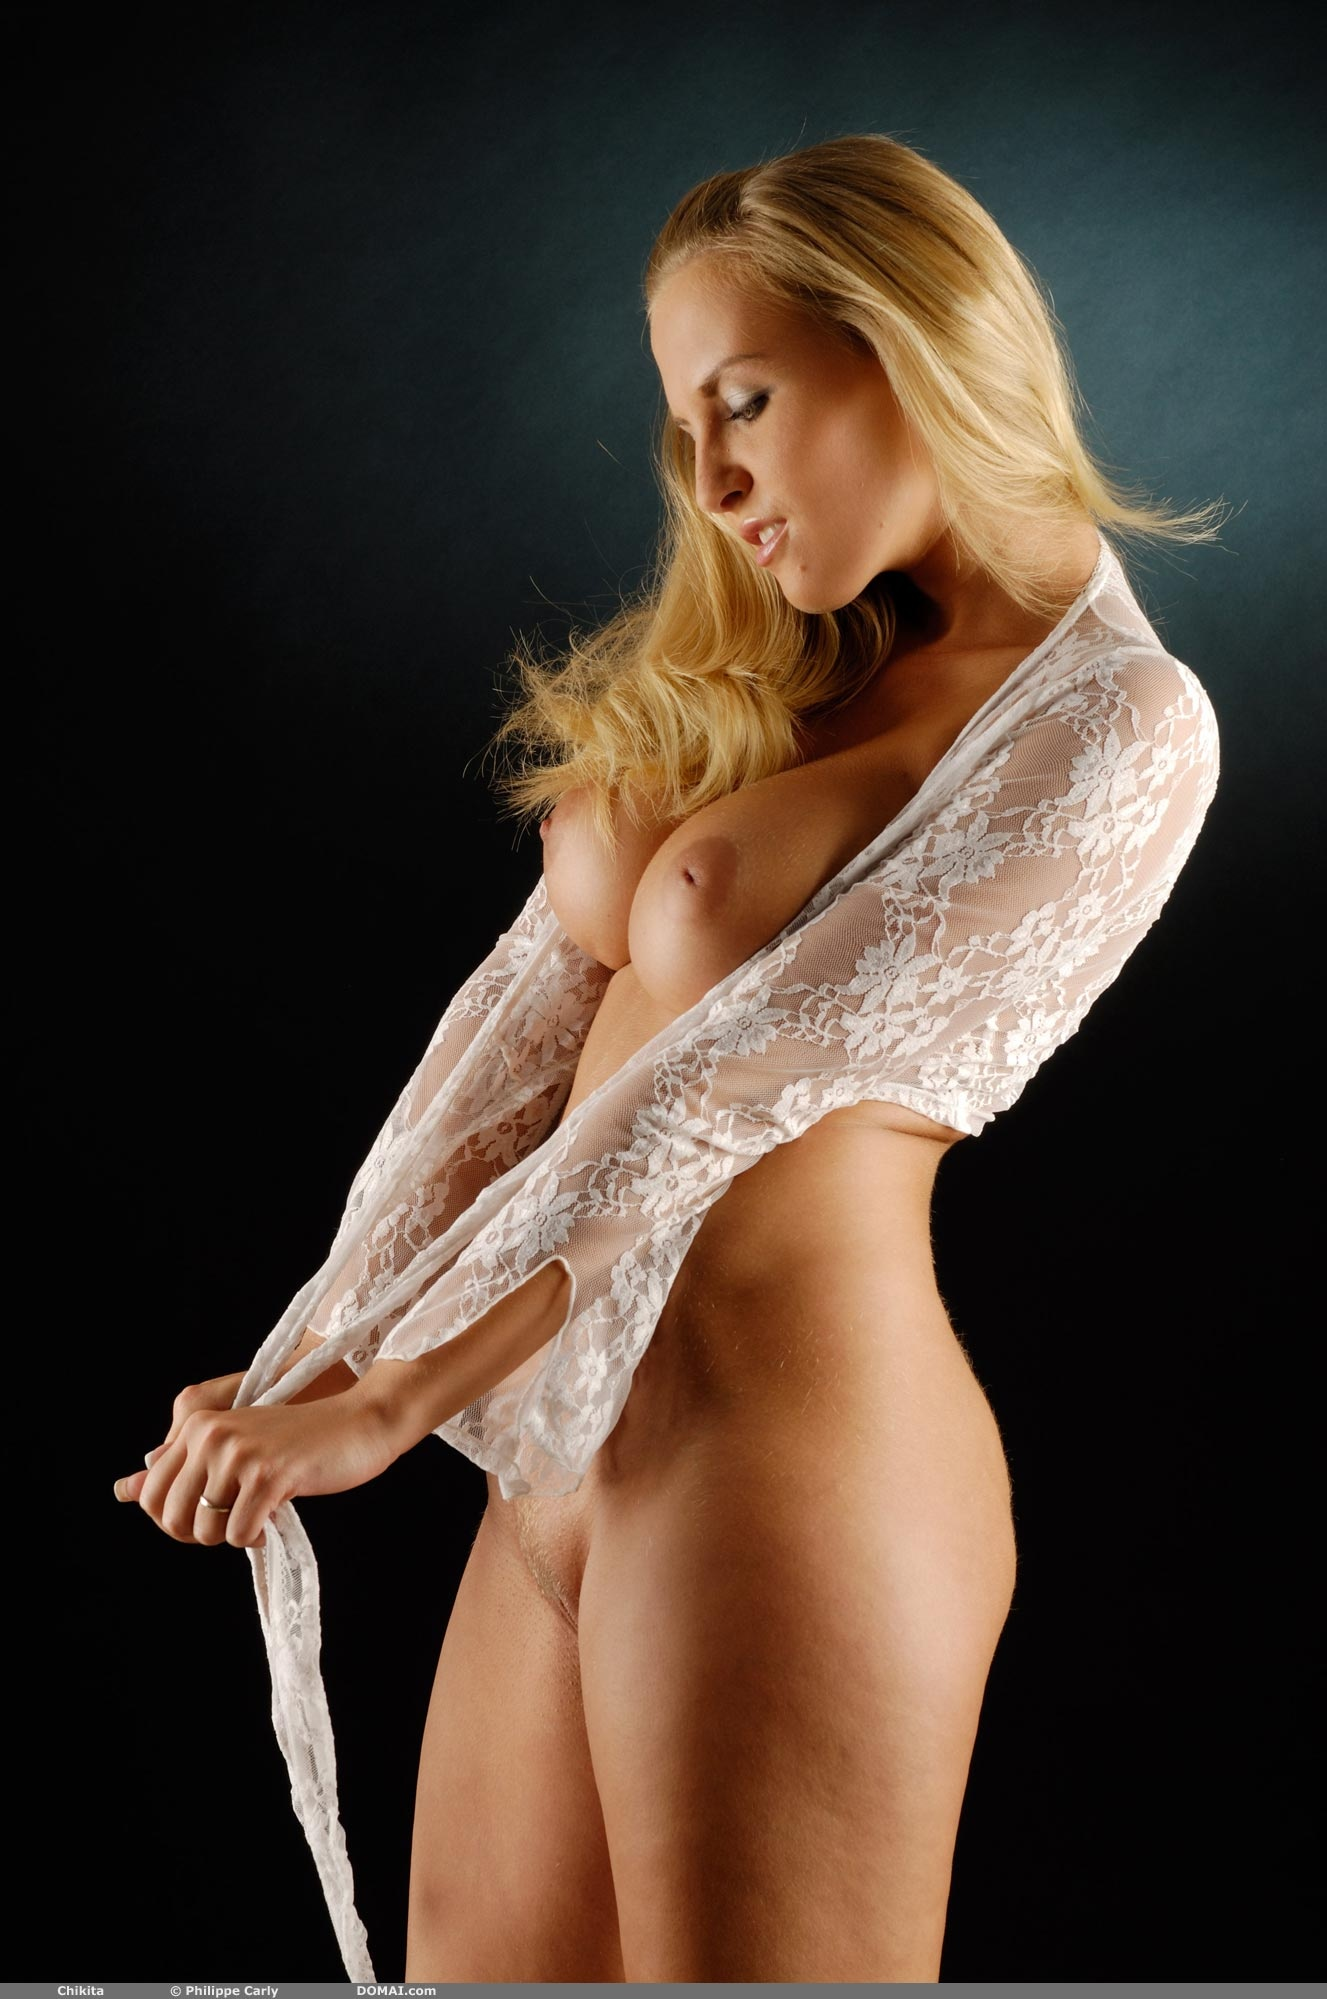 Magnificent Simple beautiful nude women agree with